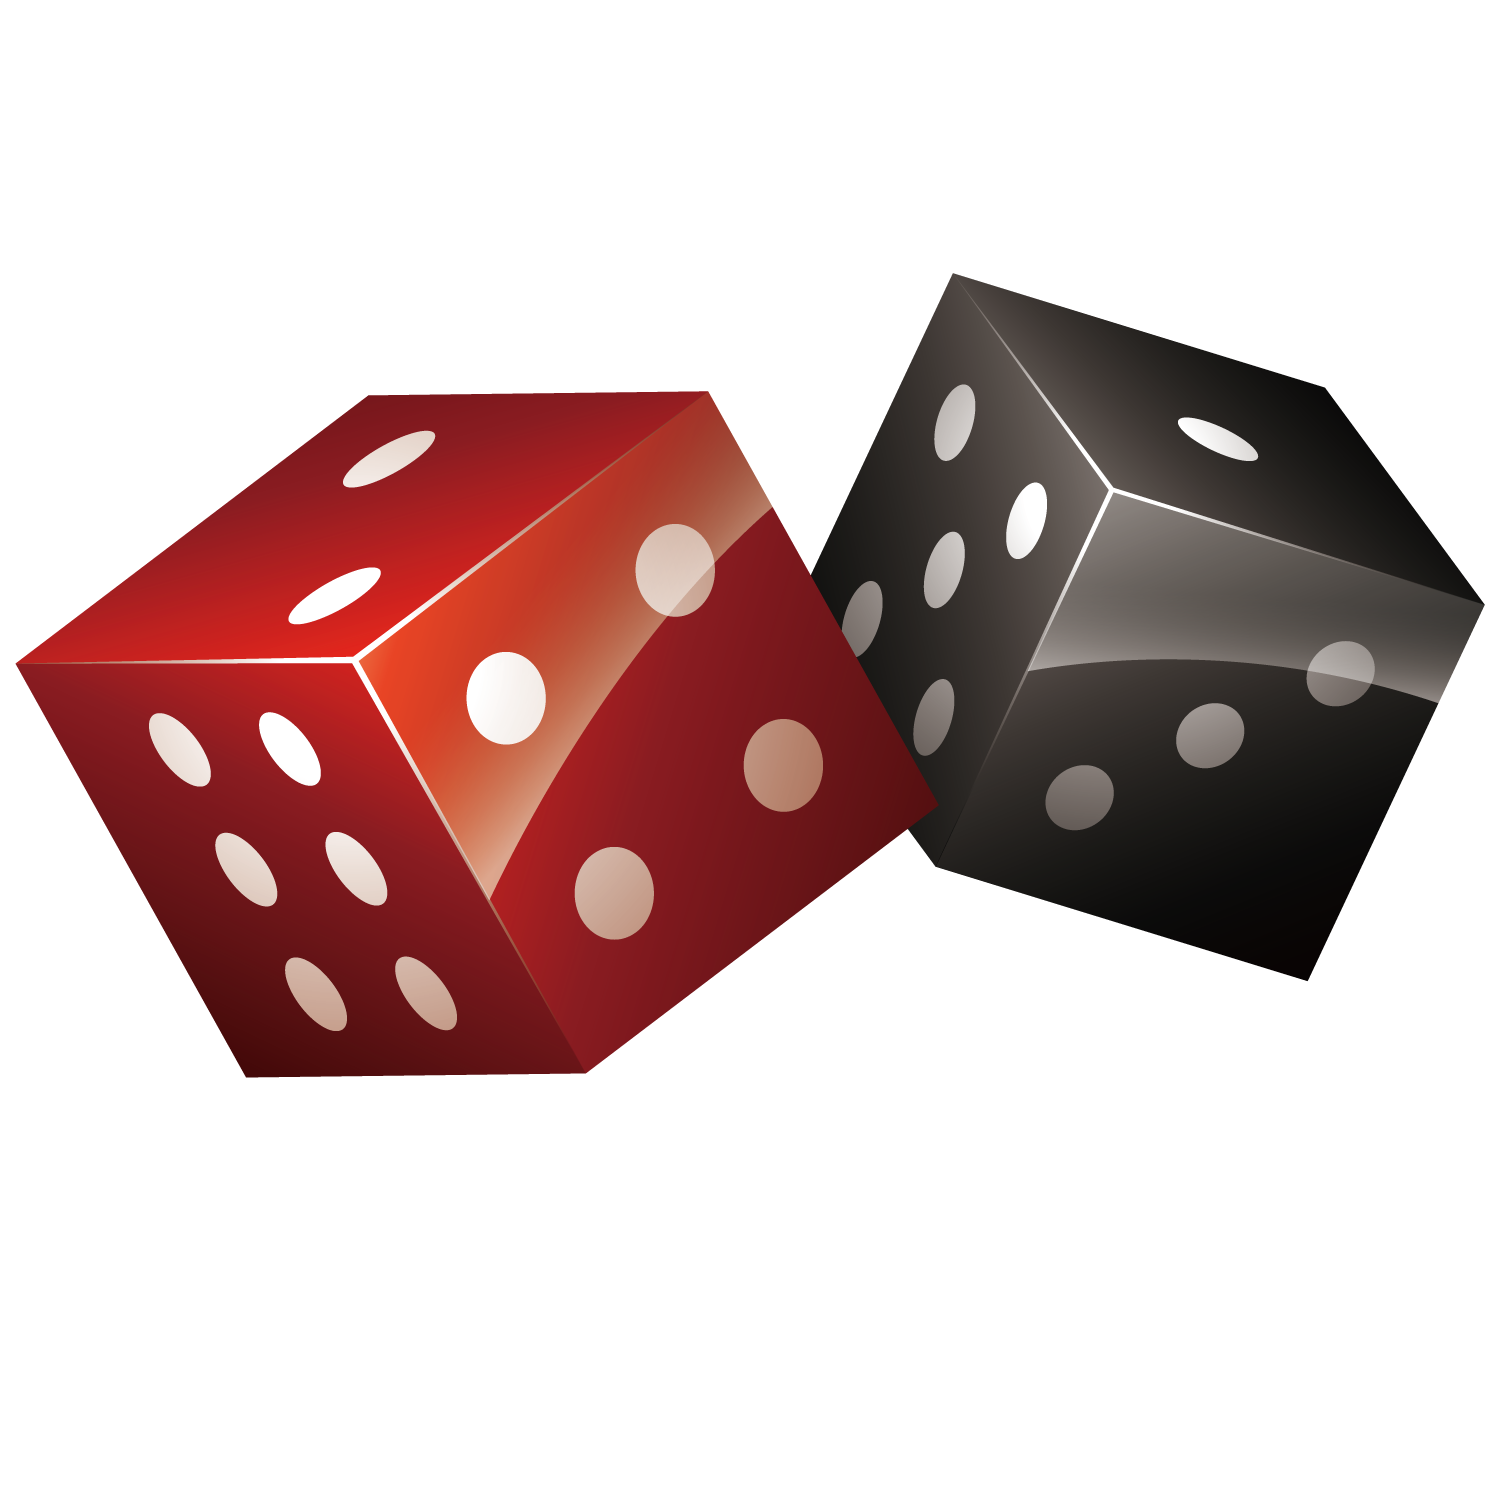 dice png images are download crazypngm crazy png images download #30551